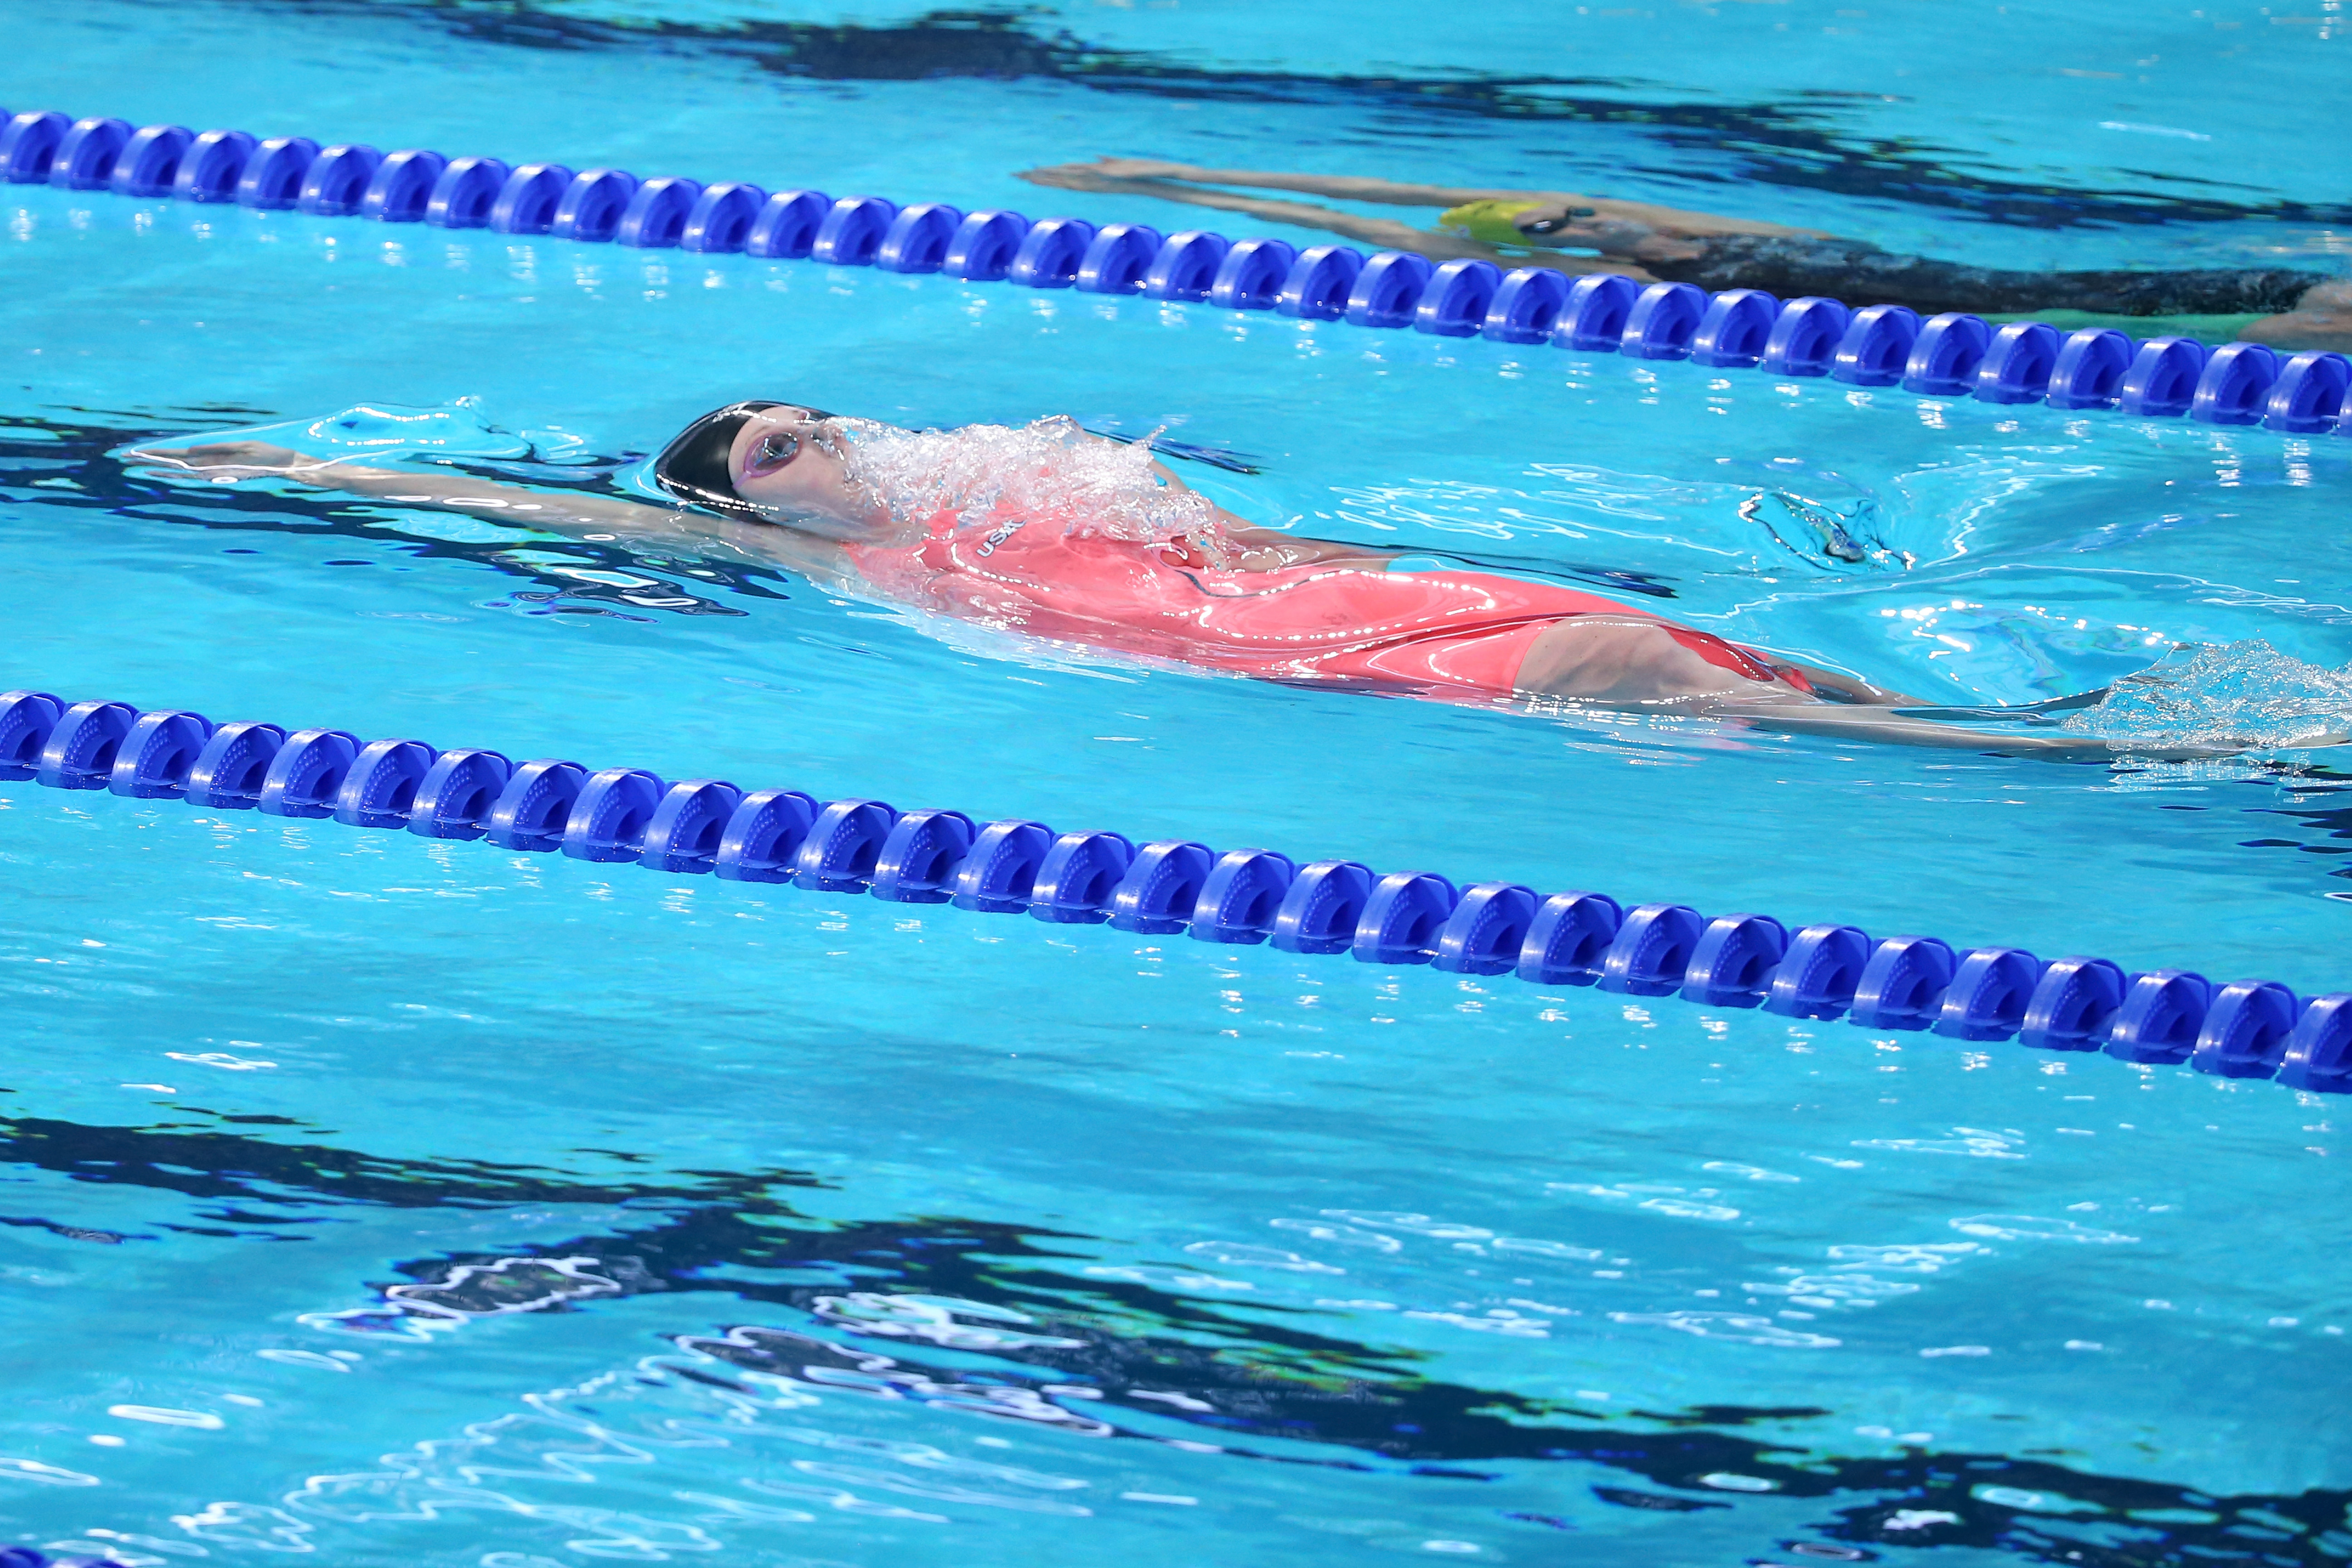 Missy Franklin of the United States competes in the Women's 100m Backstroke Final on day eleven of the 16th FINA World Championships at the Kazan Arena on August 4, 2015 in Kazan, Russia. (Photo by Streeter Lecka/Getty Images)